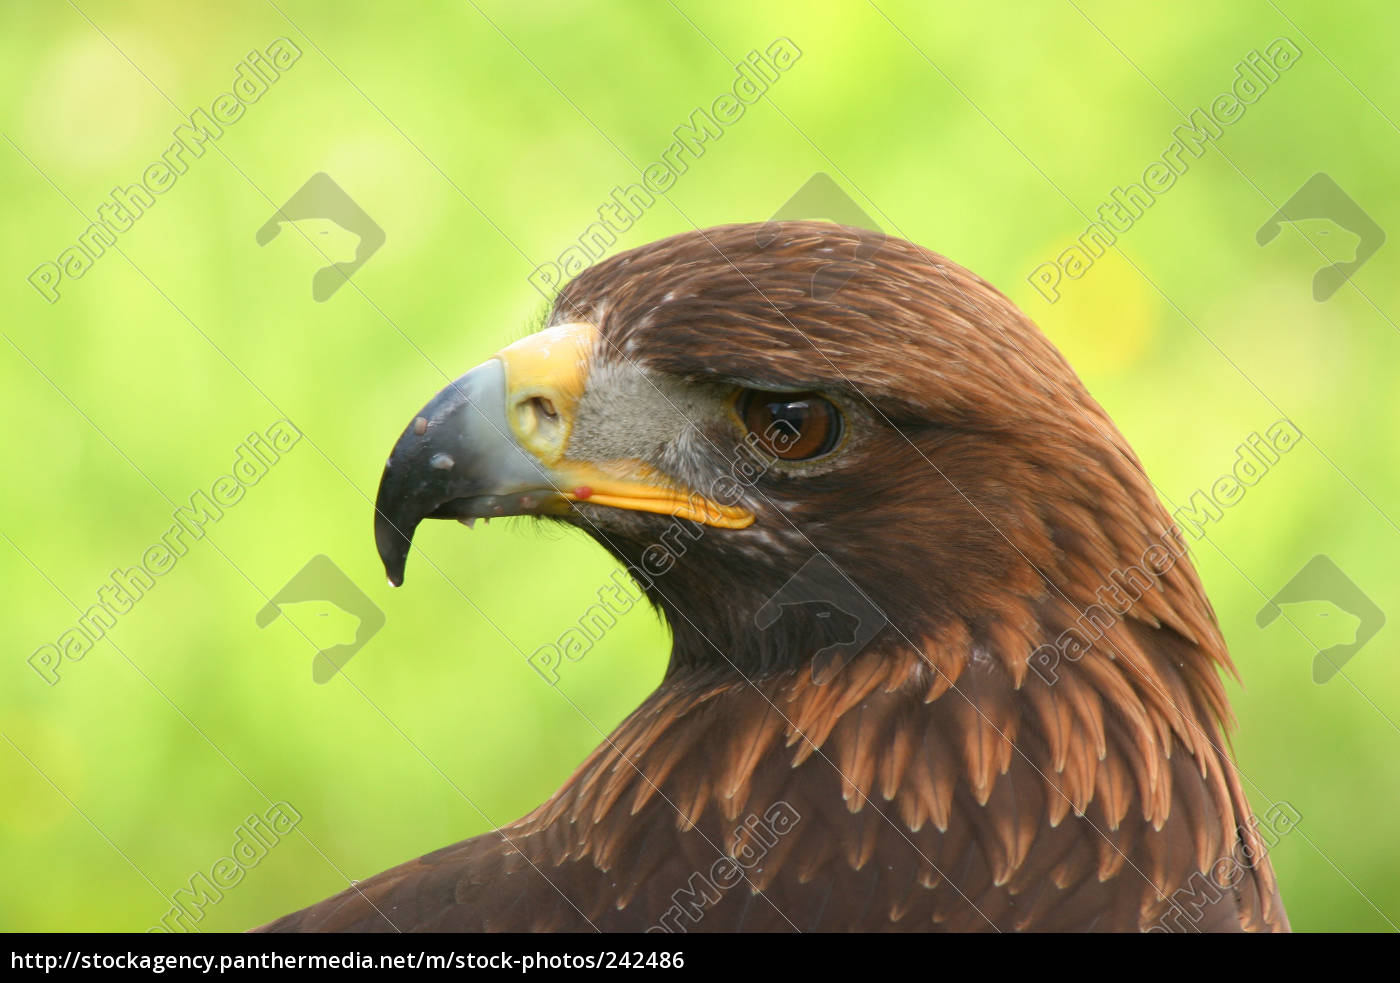 golden, eagle - 242486